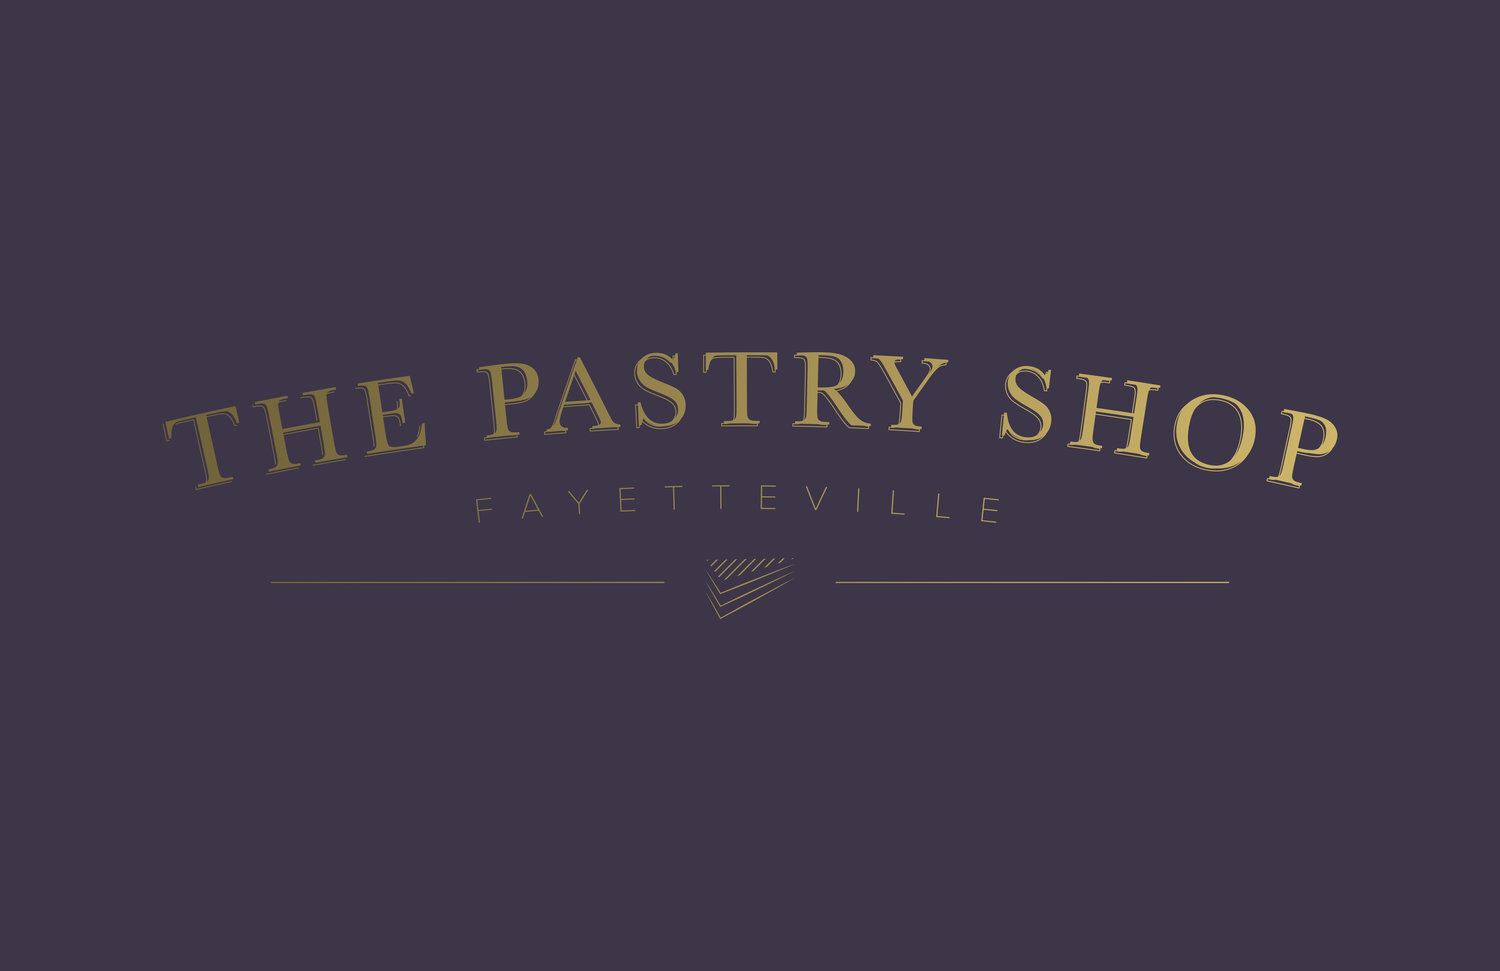 The+pastry+shop_2.jpg